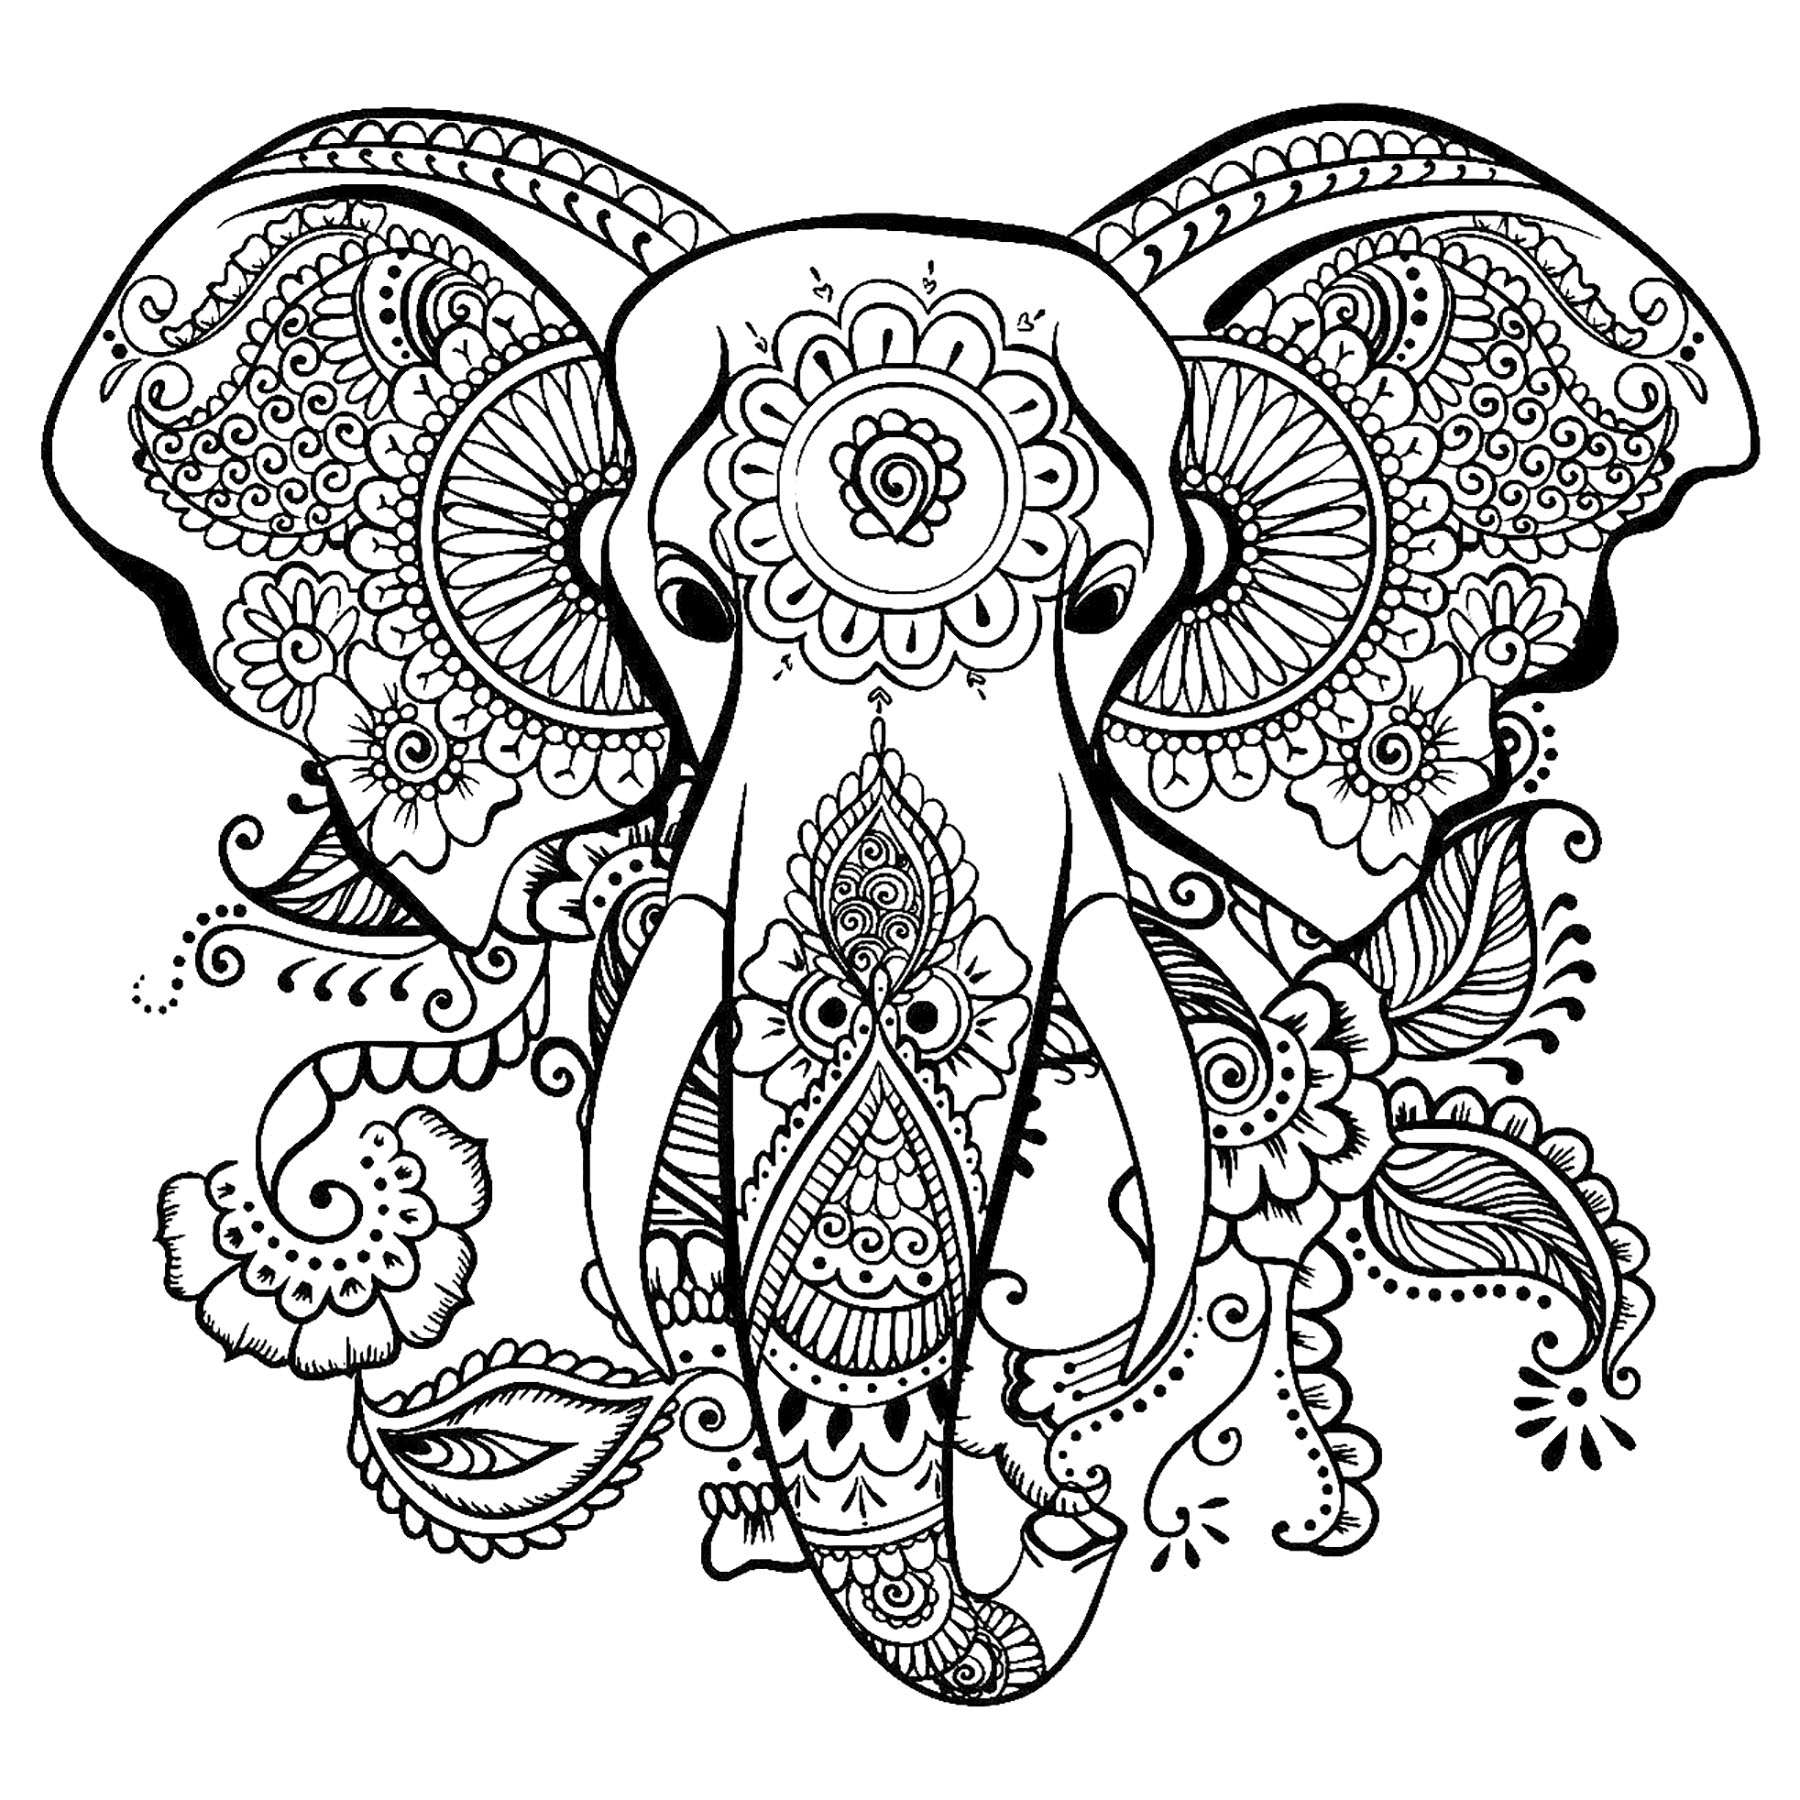 colouring pages of elephant print download teaching kids through elephant coloring colouring of elephant pages